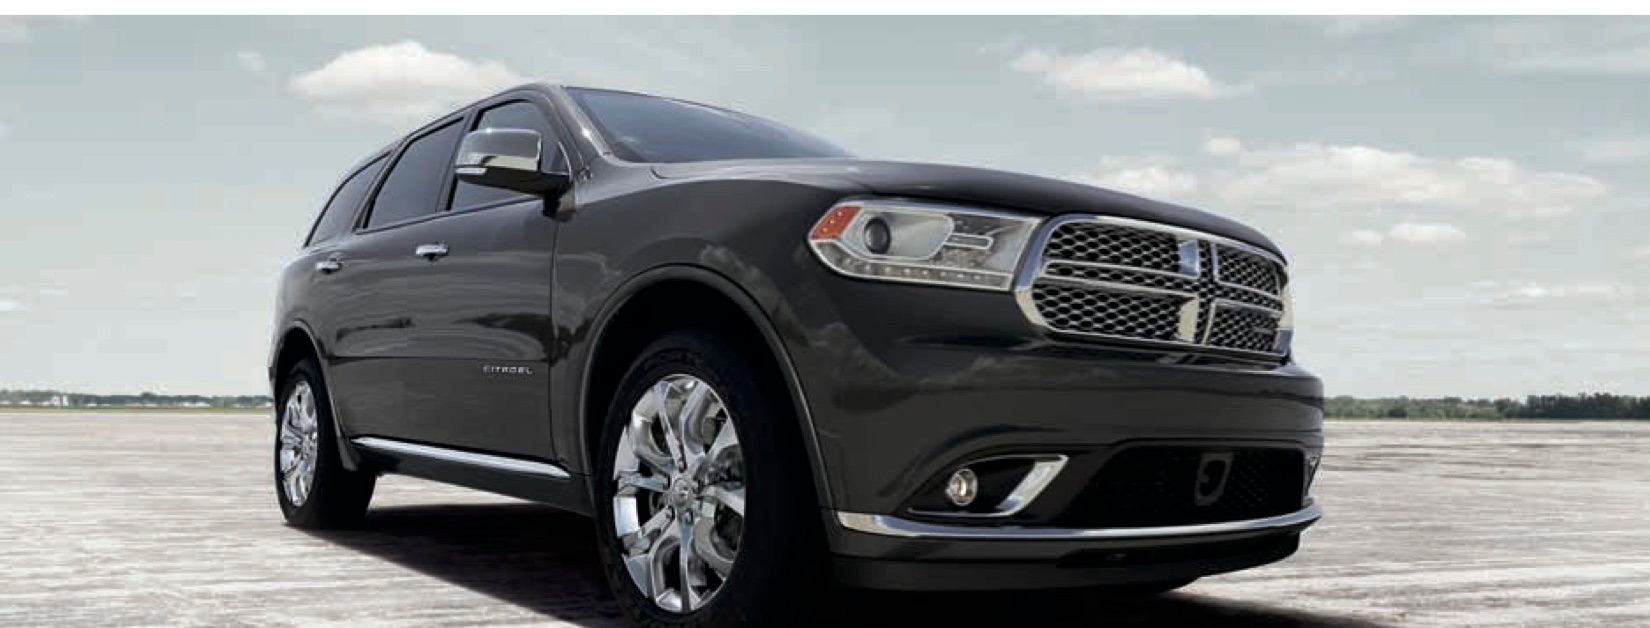 dodge_durango_lappi_performance_front_black